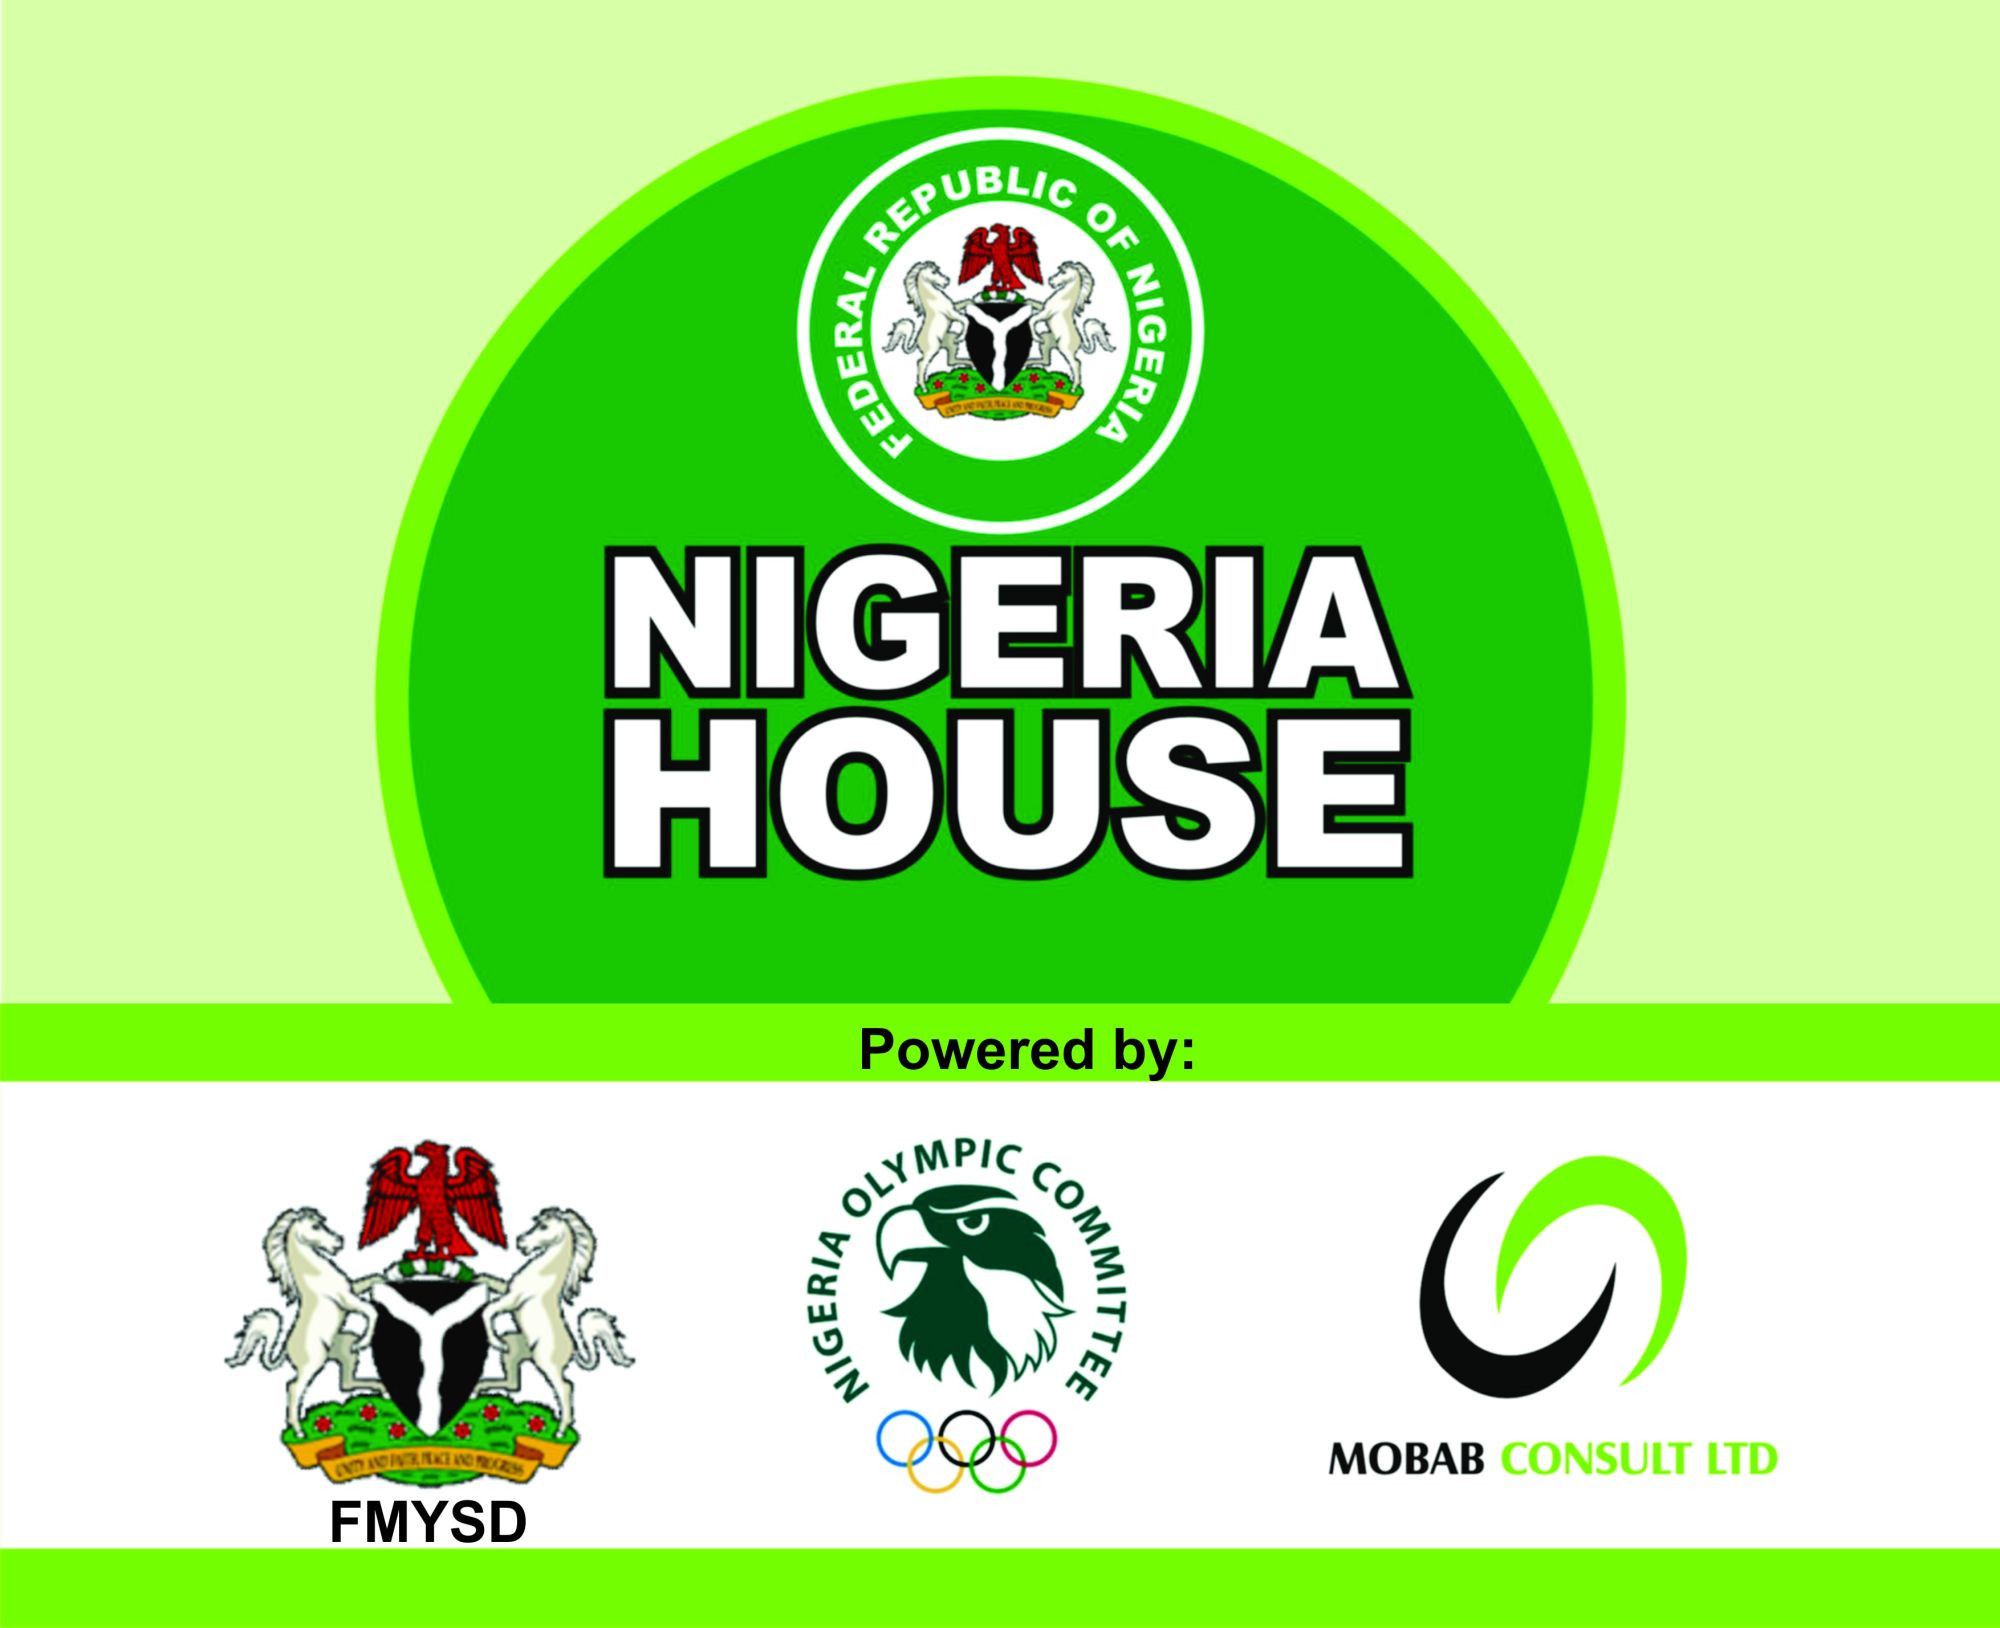 Nigeria Olympic Committee to review Tokyo 2020 House project after leadership sacked